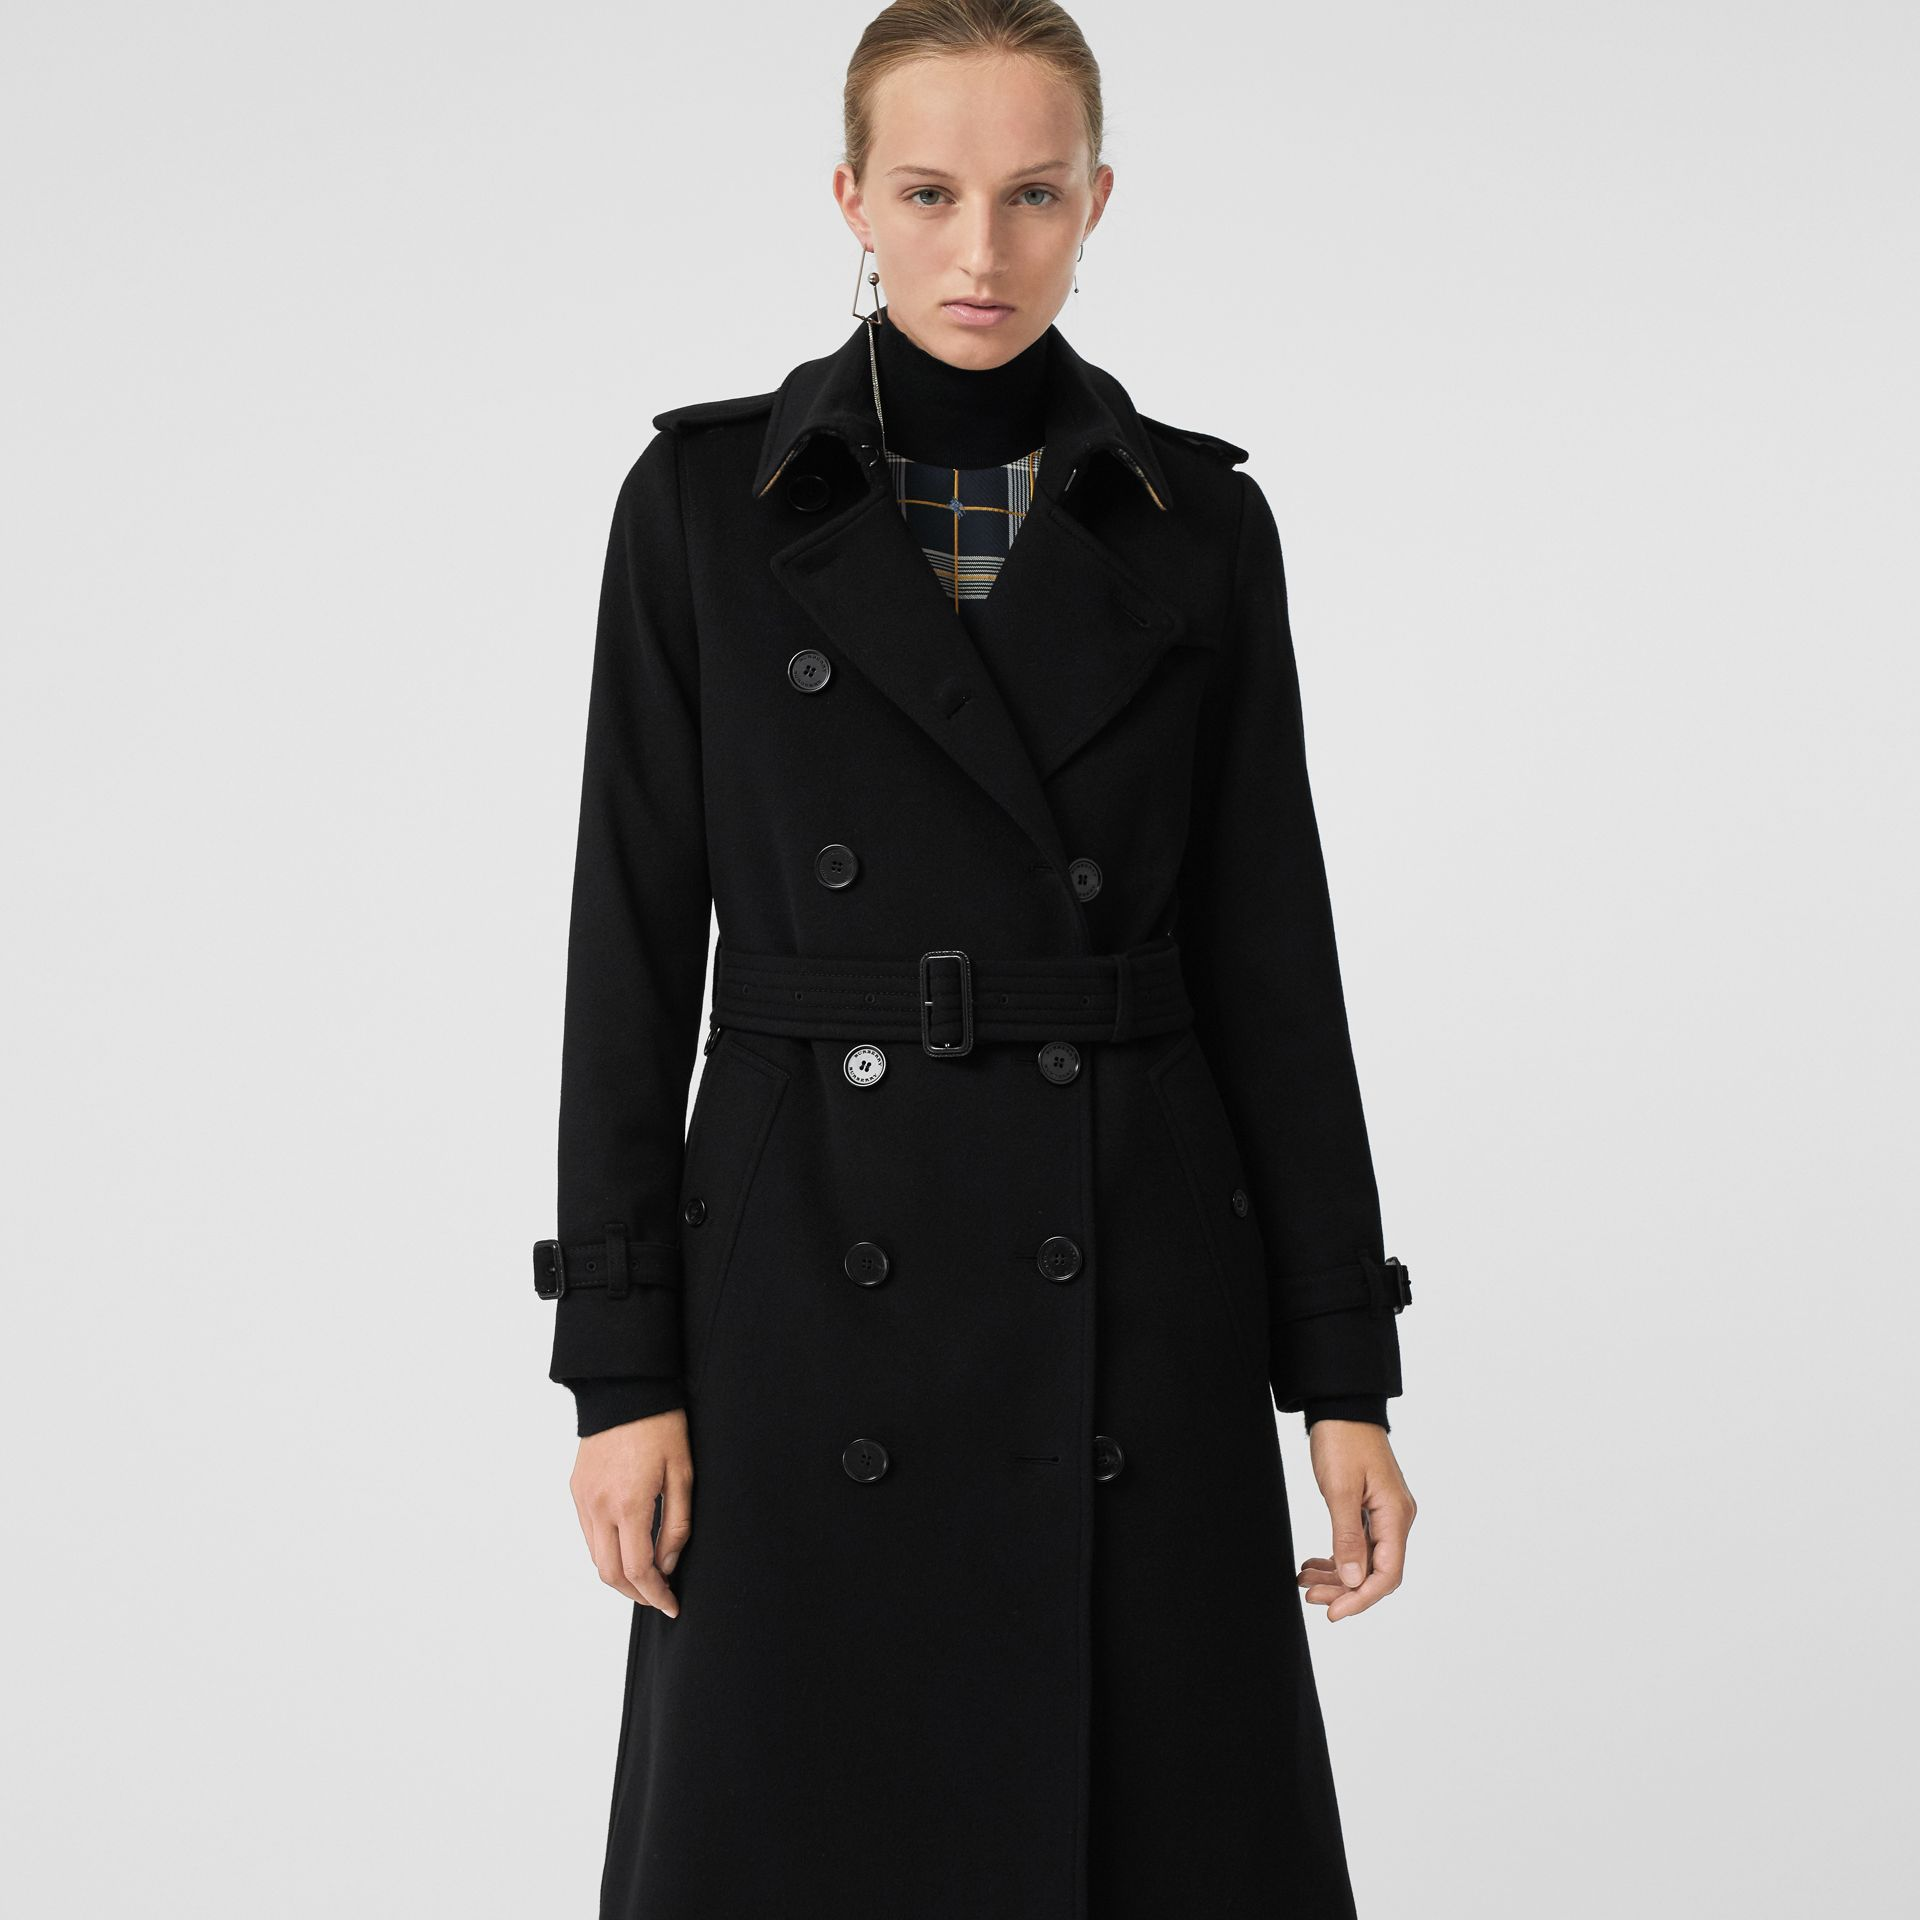 Cashmere Trench Coat in Black - Women | Burberry Hong Kong - gallery image 6